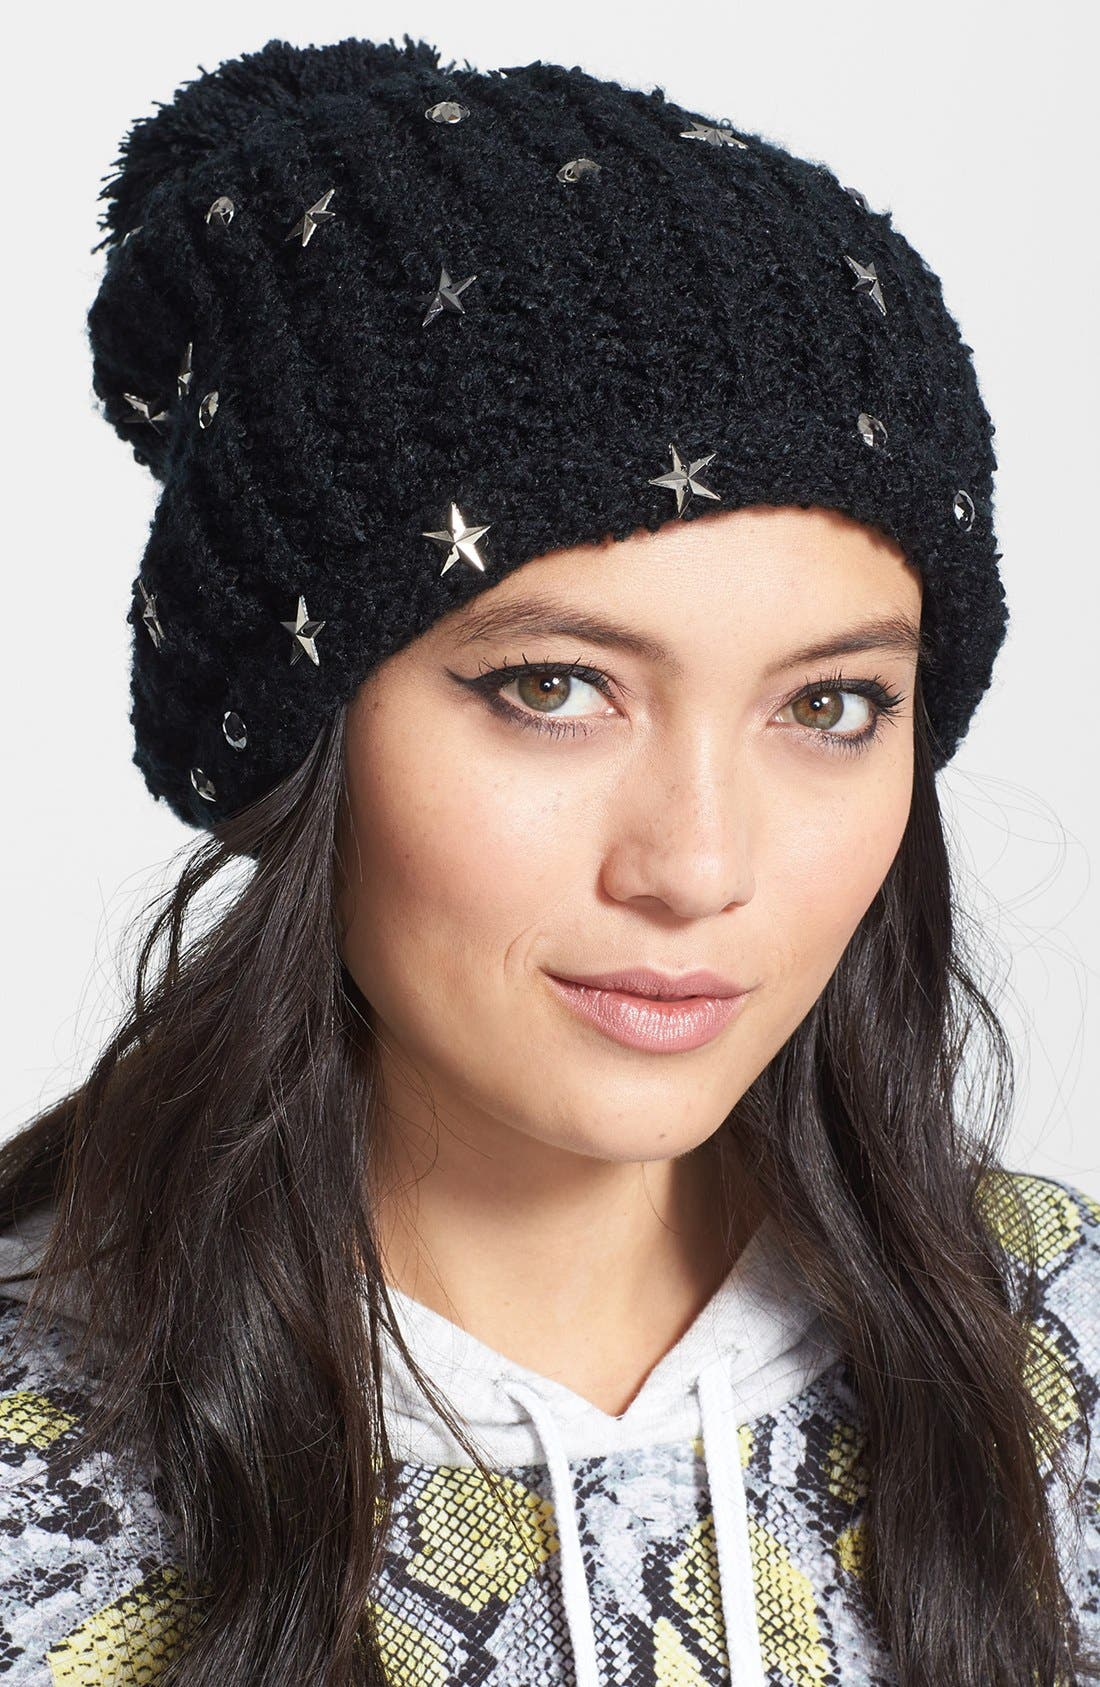 Main Image - Faubourg du Temple Embellished Pompom Beanie